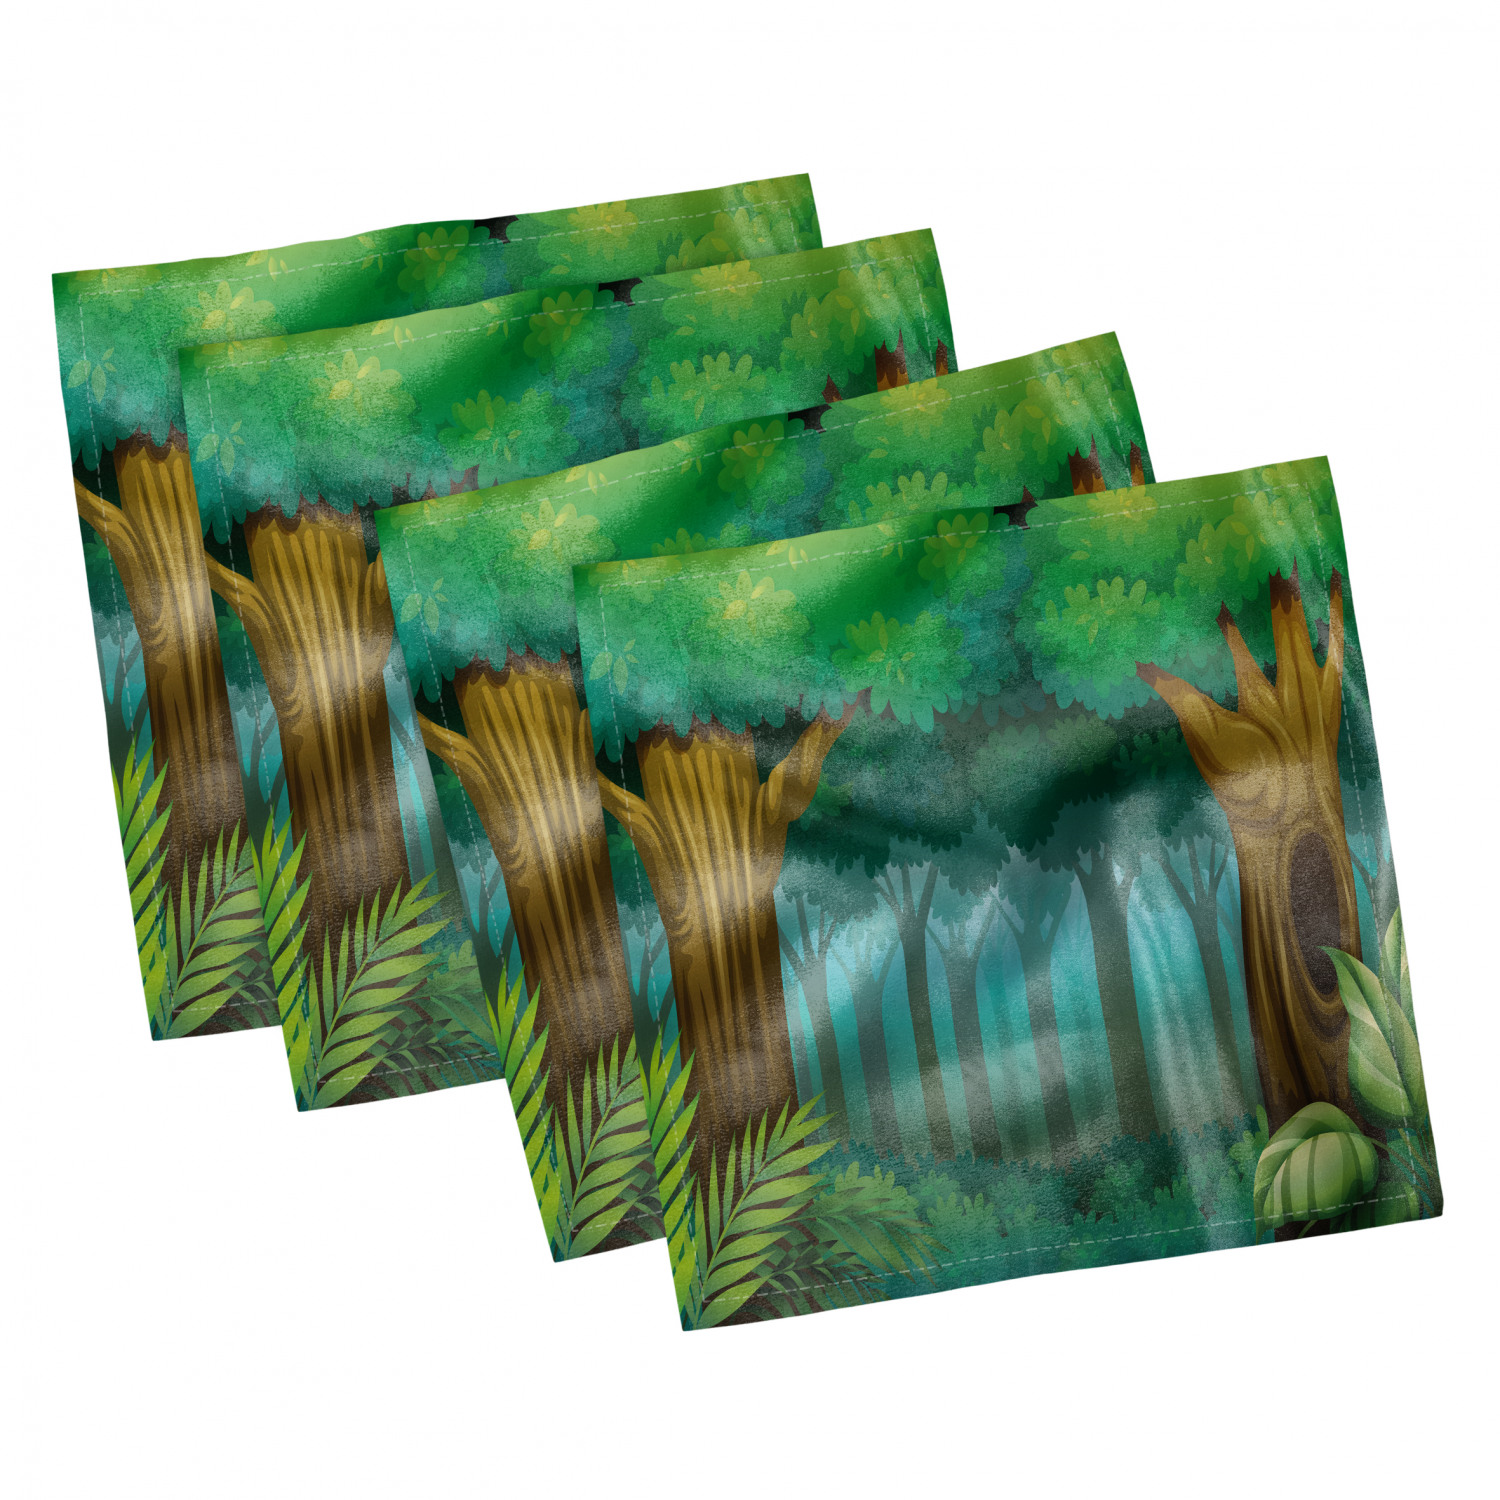 thumbnail 41 - Ambesonne-Leaves-Forest-Decorative-Satin-Napkins-Set-of-4-Party-Dinner-Fabric